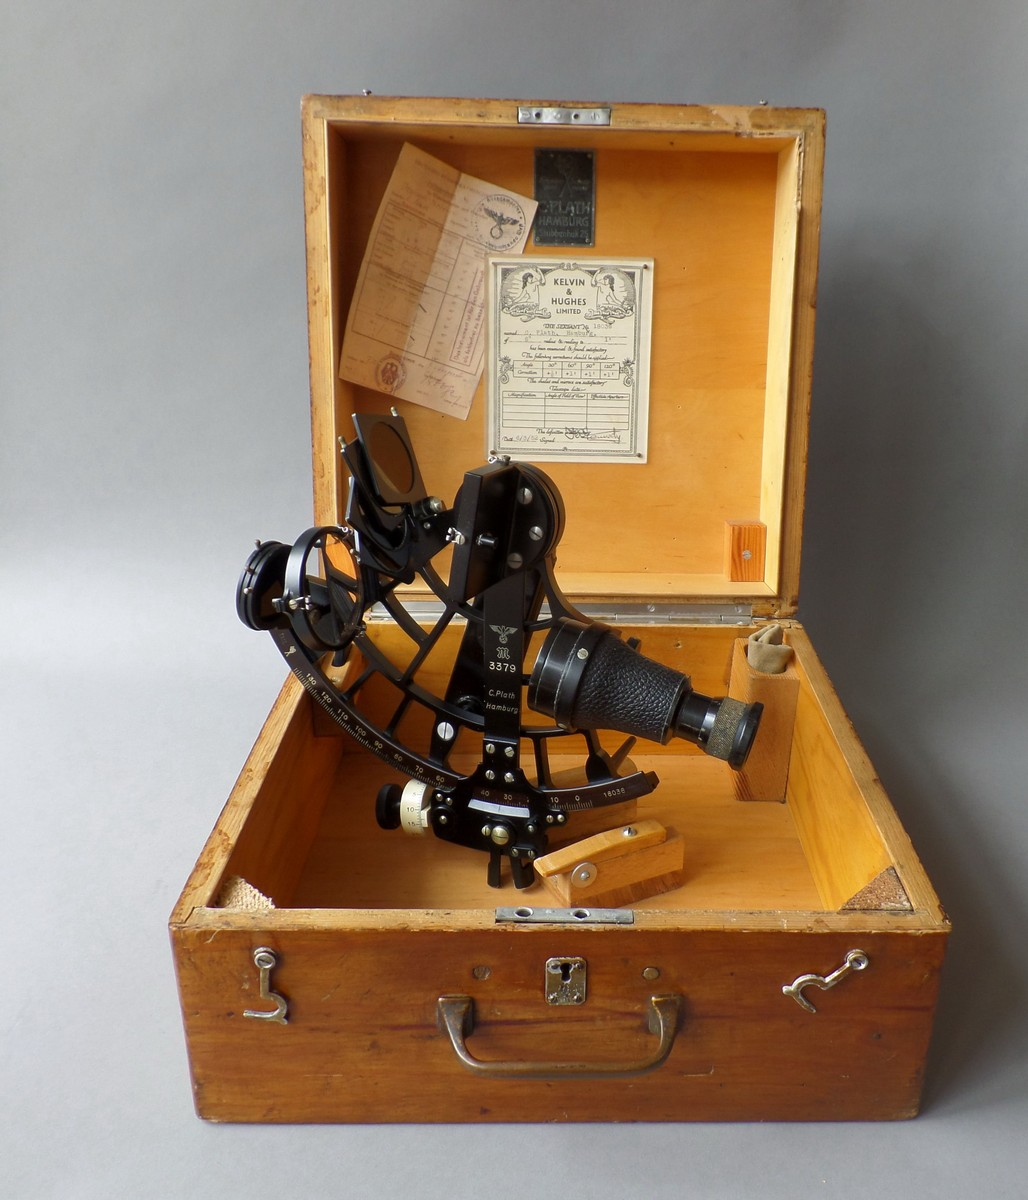 KRIEGSMARINE SEXTANT BY PLATH HAMBURG 1942